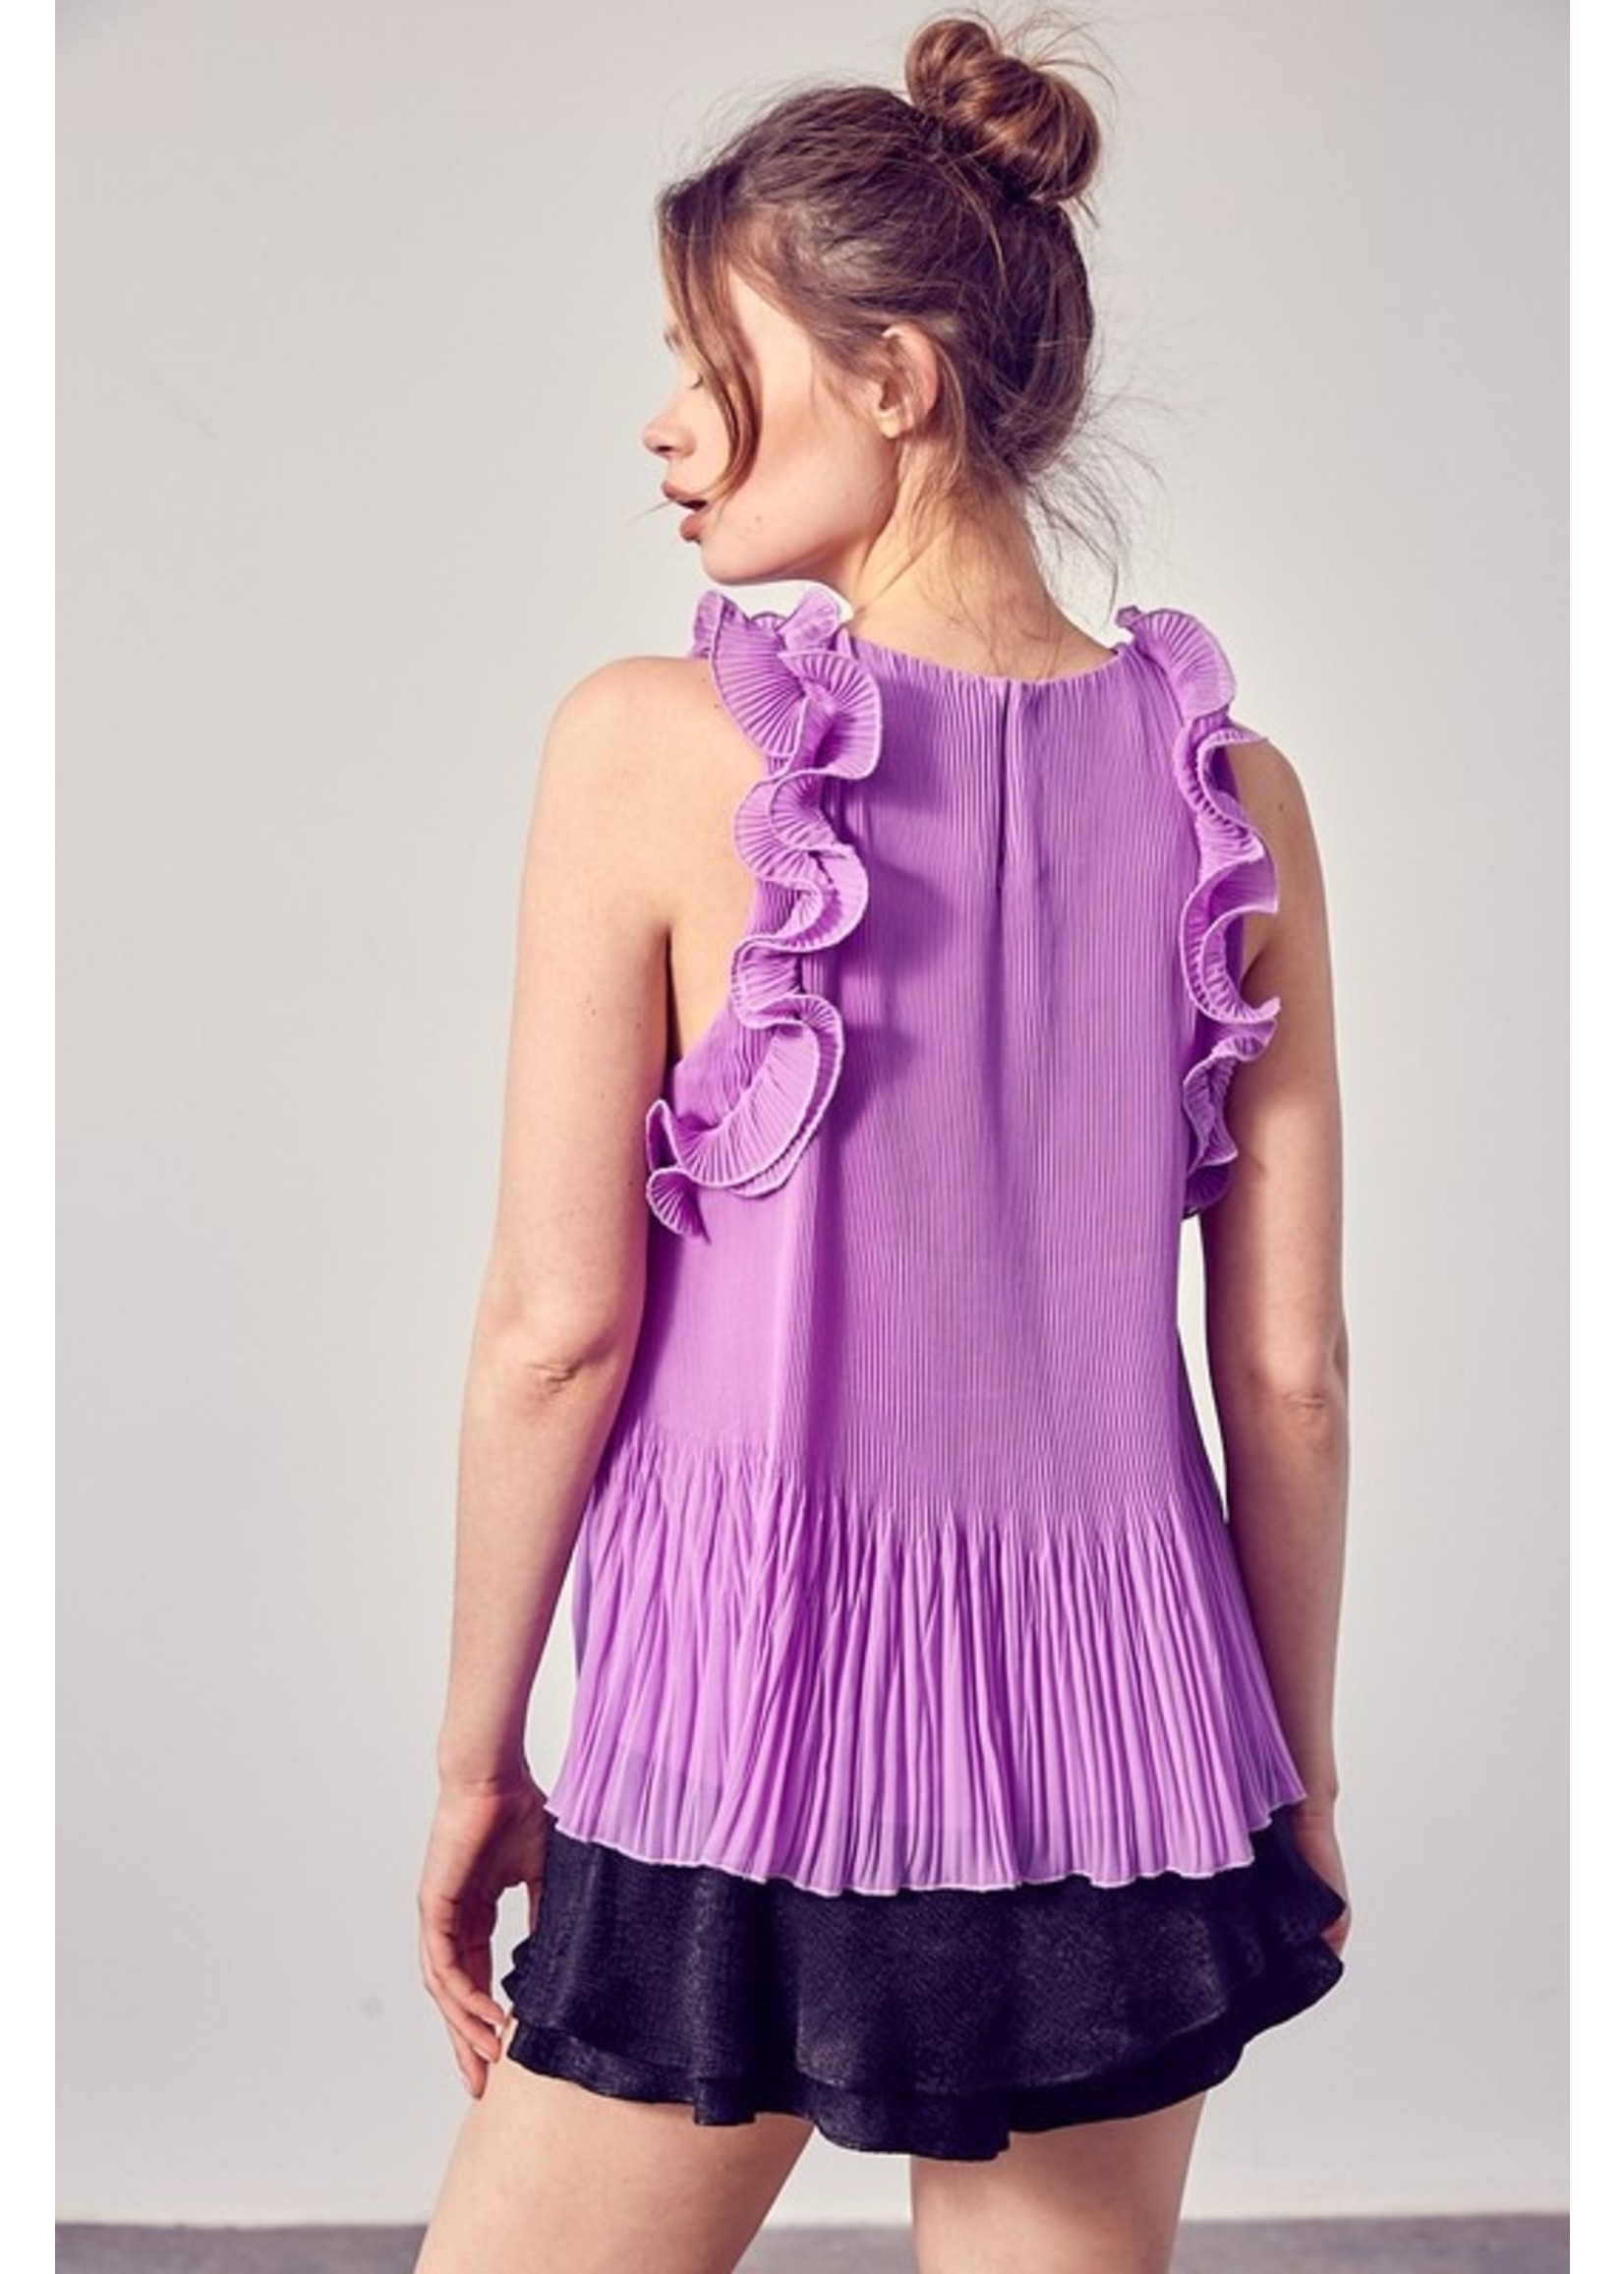 DO + BE Pleated Ruffled Detail Crop - Y19836